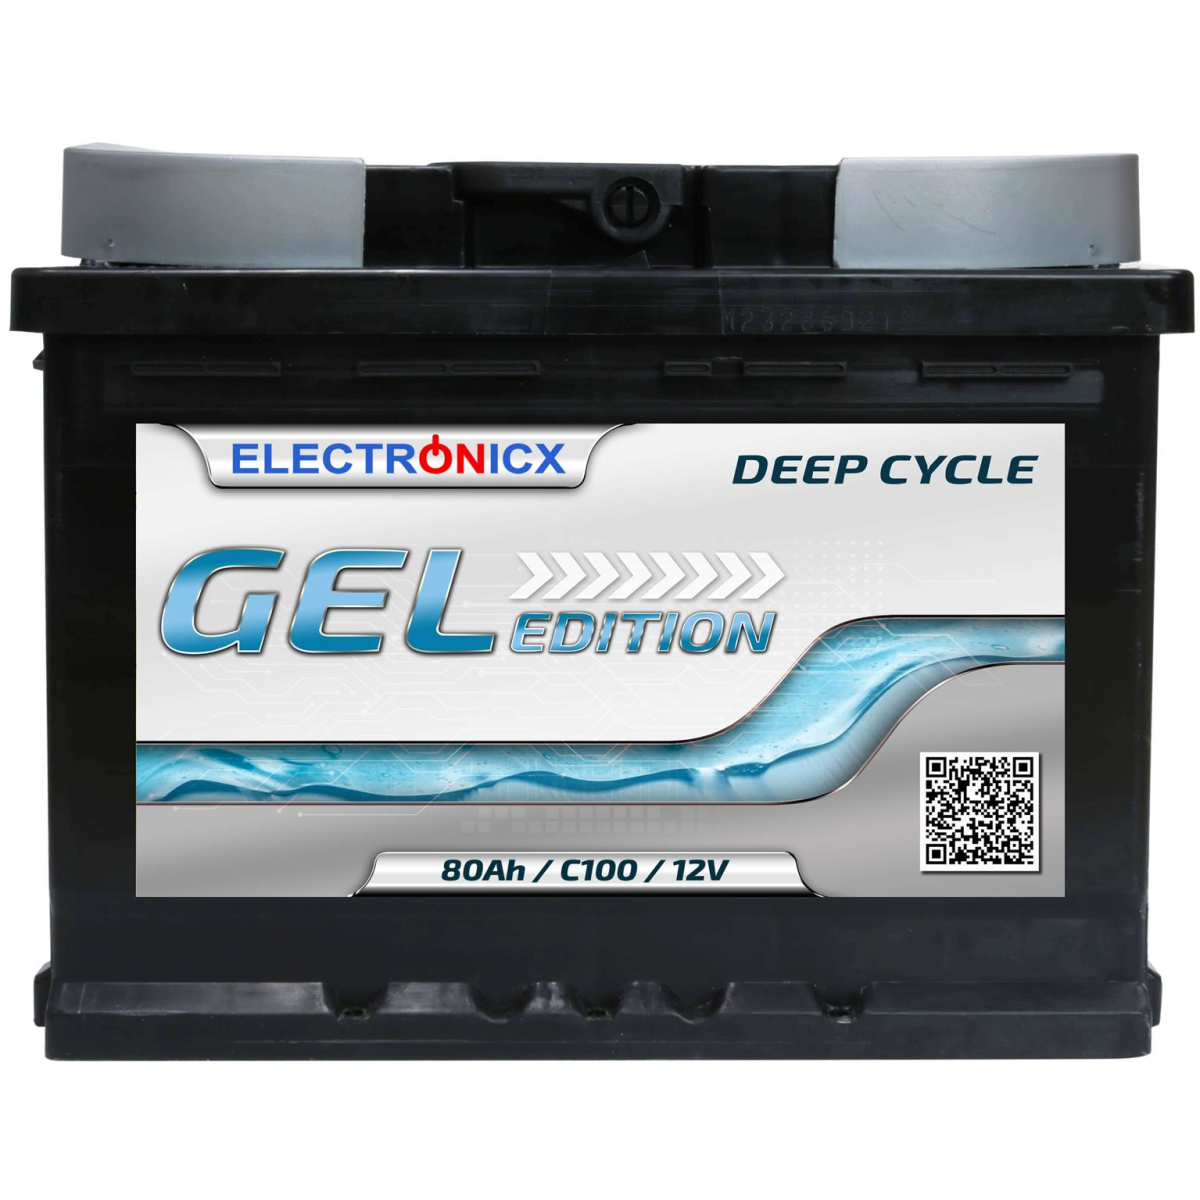 Electronicx Edition Gel Batterie 80 AH 12V Wohnmobil Boot Versorgung